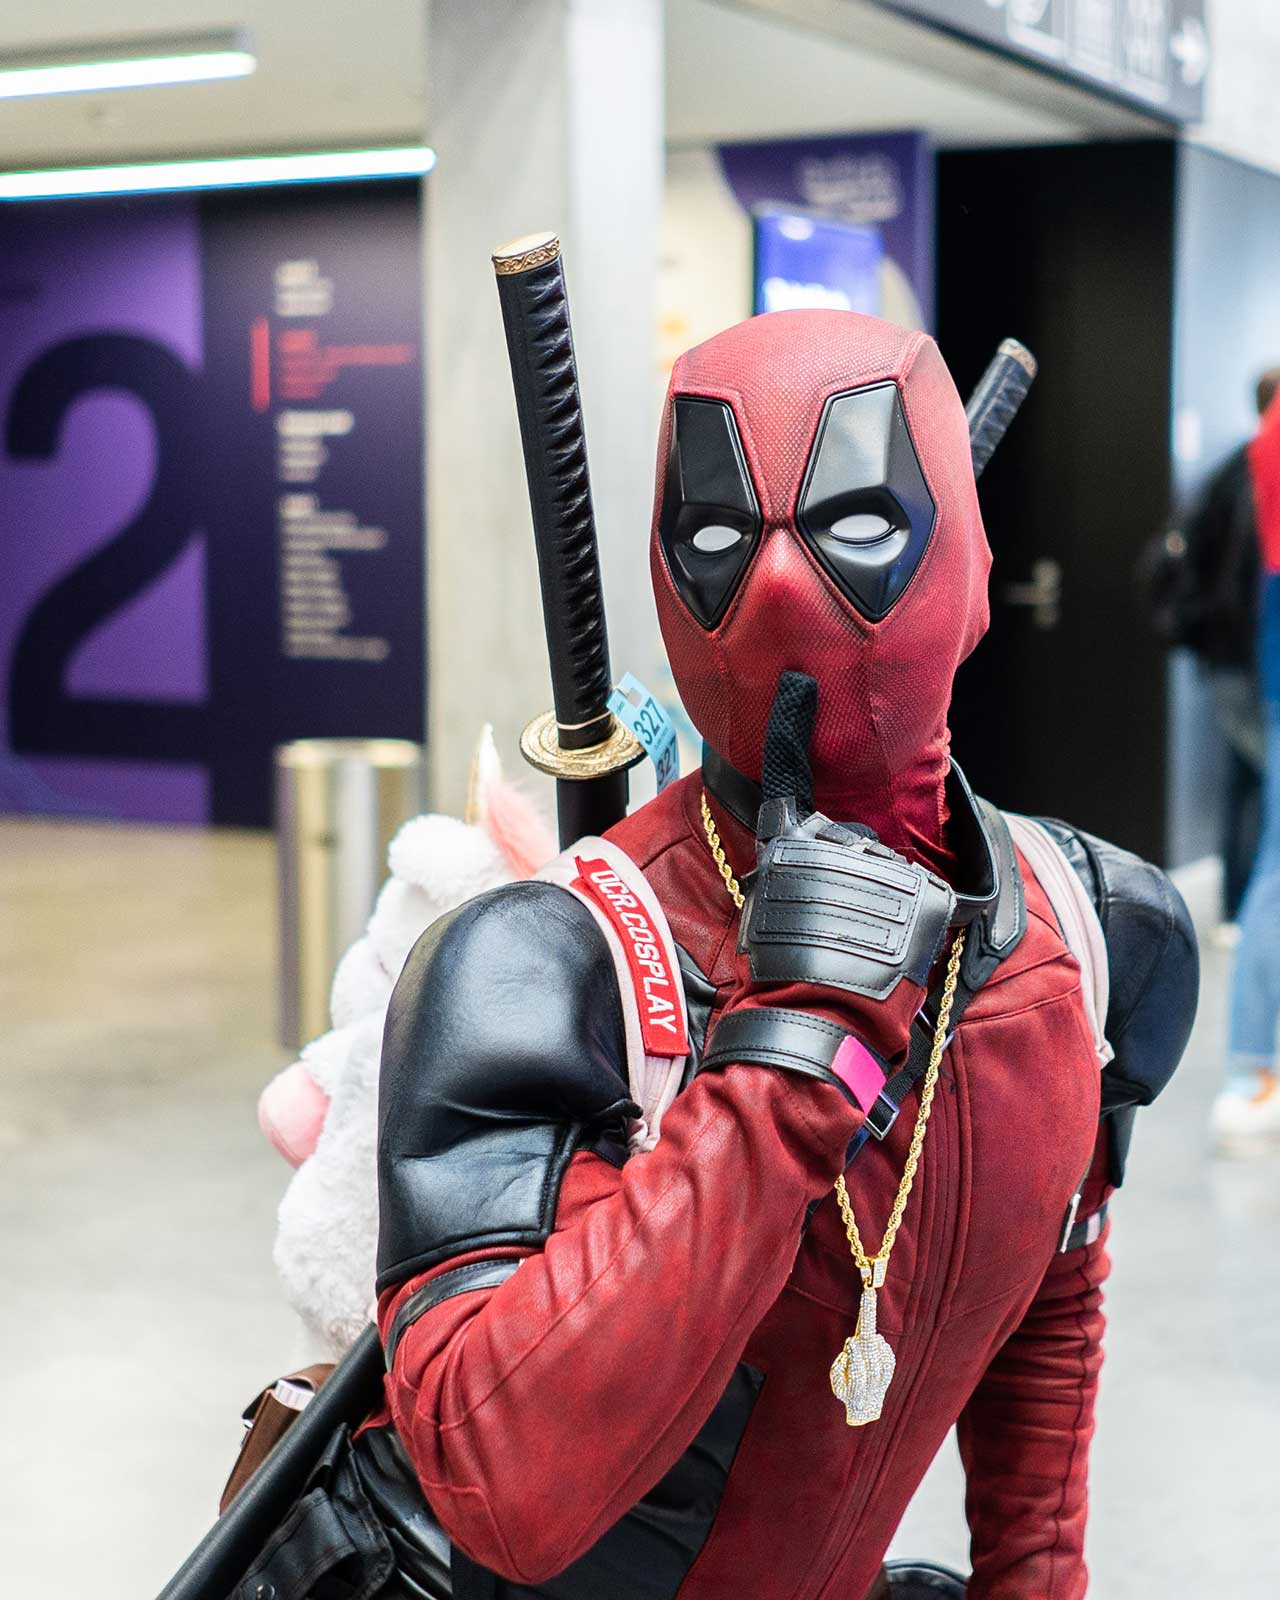 Cosplayer dressed as Deadpool at TwitchCon EU in Berlin.